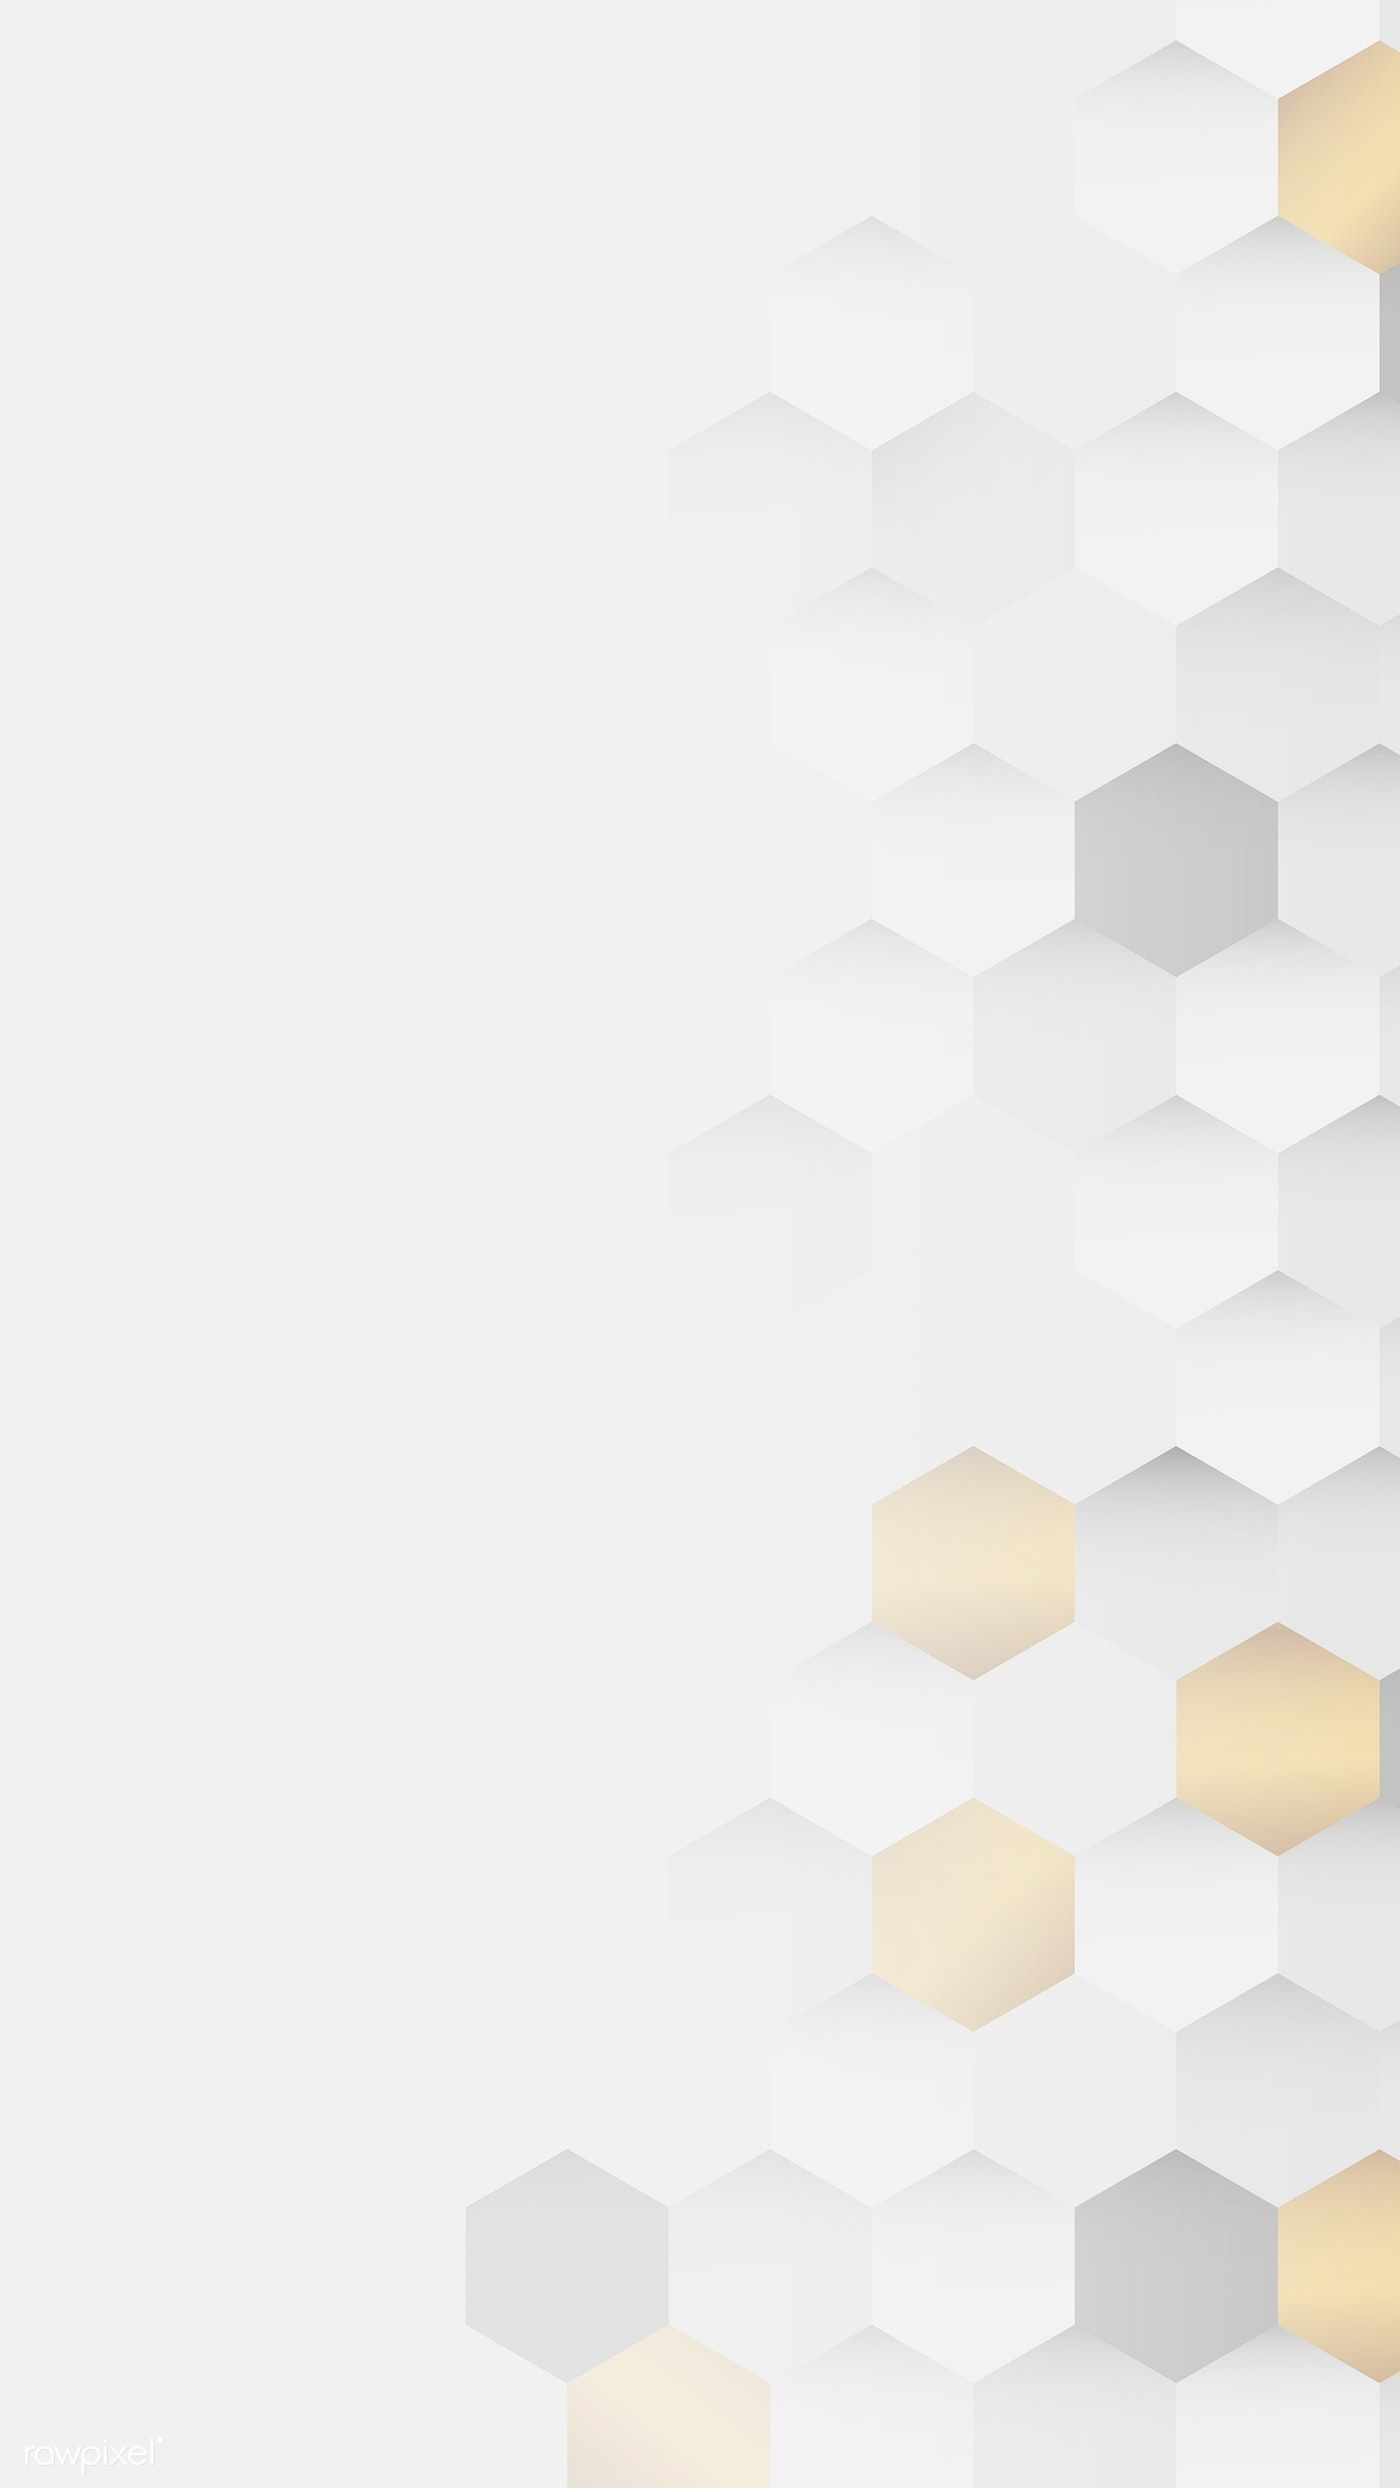 Download Premium Image Of White And Gold Hexagon Pattern Background Mobile Background Downlo Background Patterns Hexagon Pattern Geometric Pattern Background